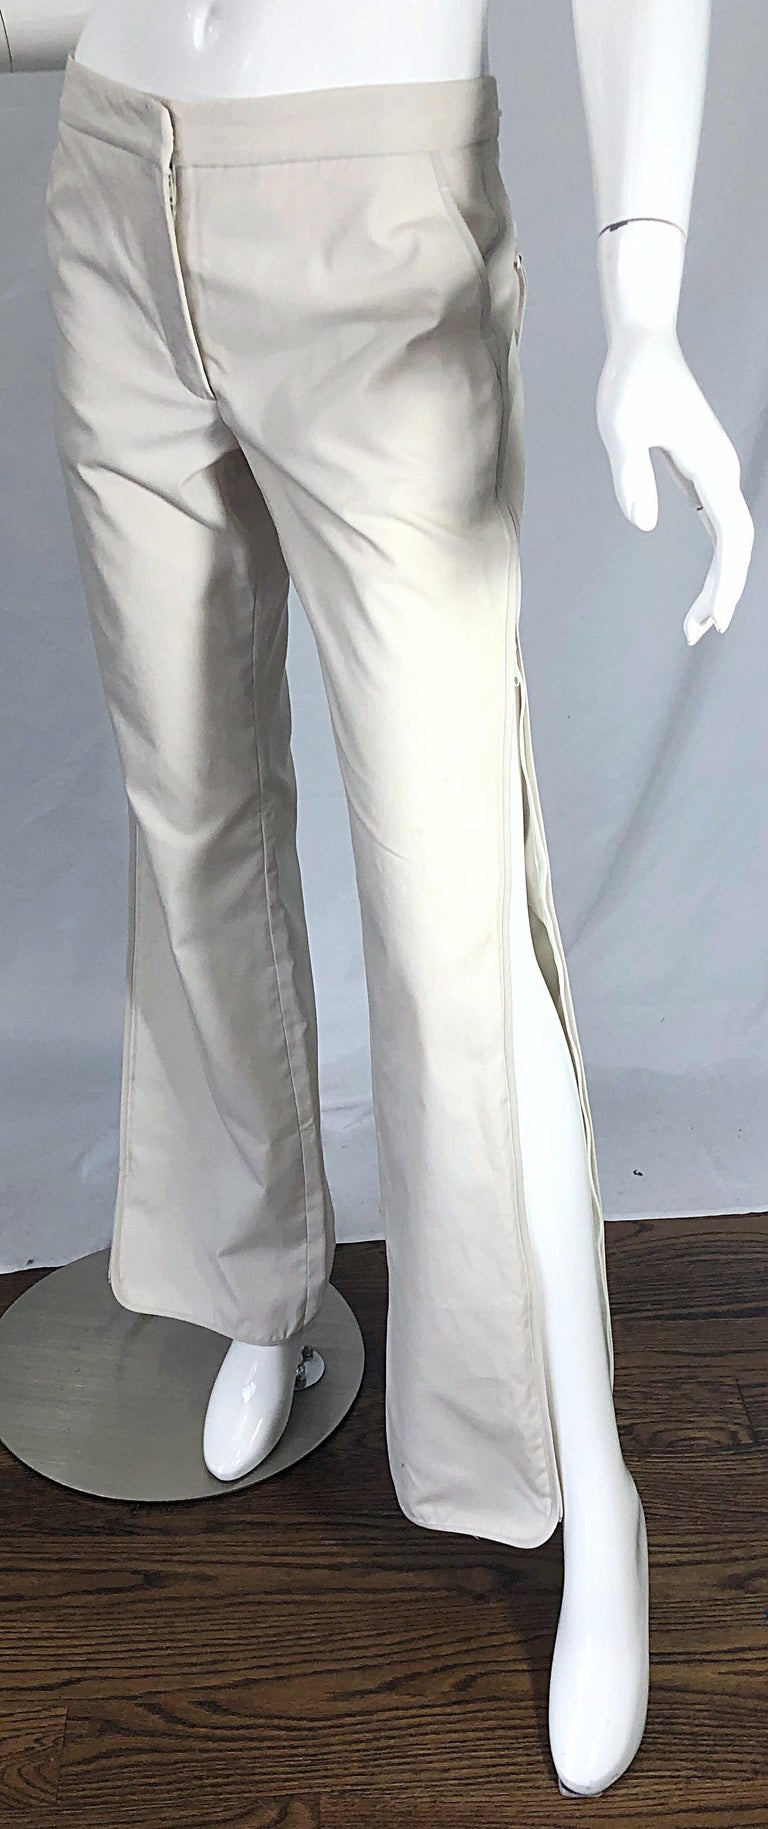 Late 90s KATAYONE ADELI low rise cotton trousers ! Slim fit with zippers up each outter leg all the way from the waistband to the hem. Hook-and-eye closure at waist with additional inner button closure. Pockets at each side of the waist and on the